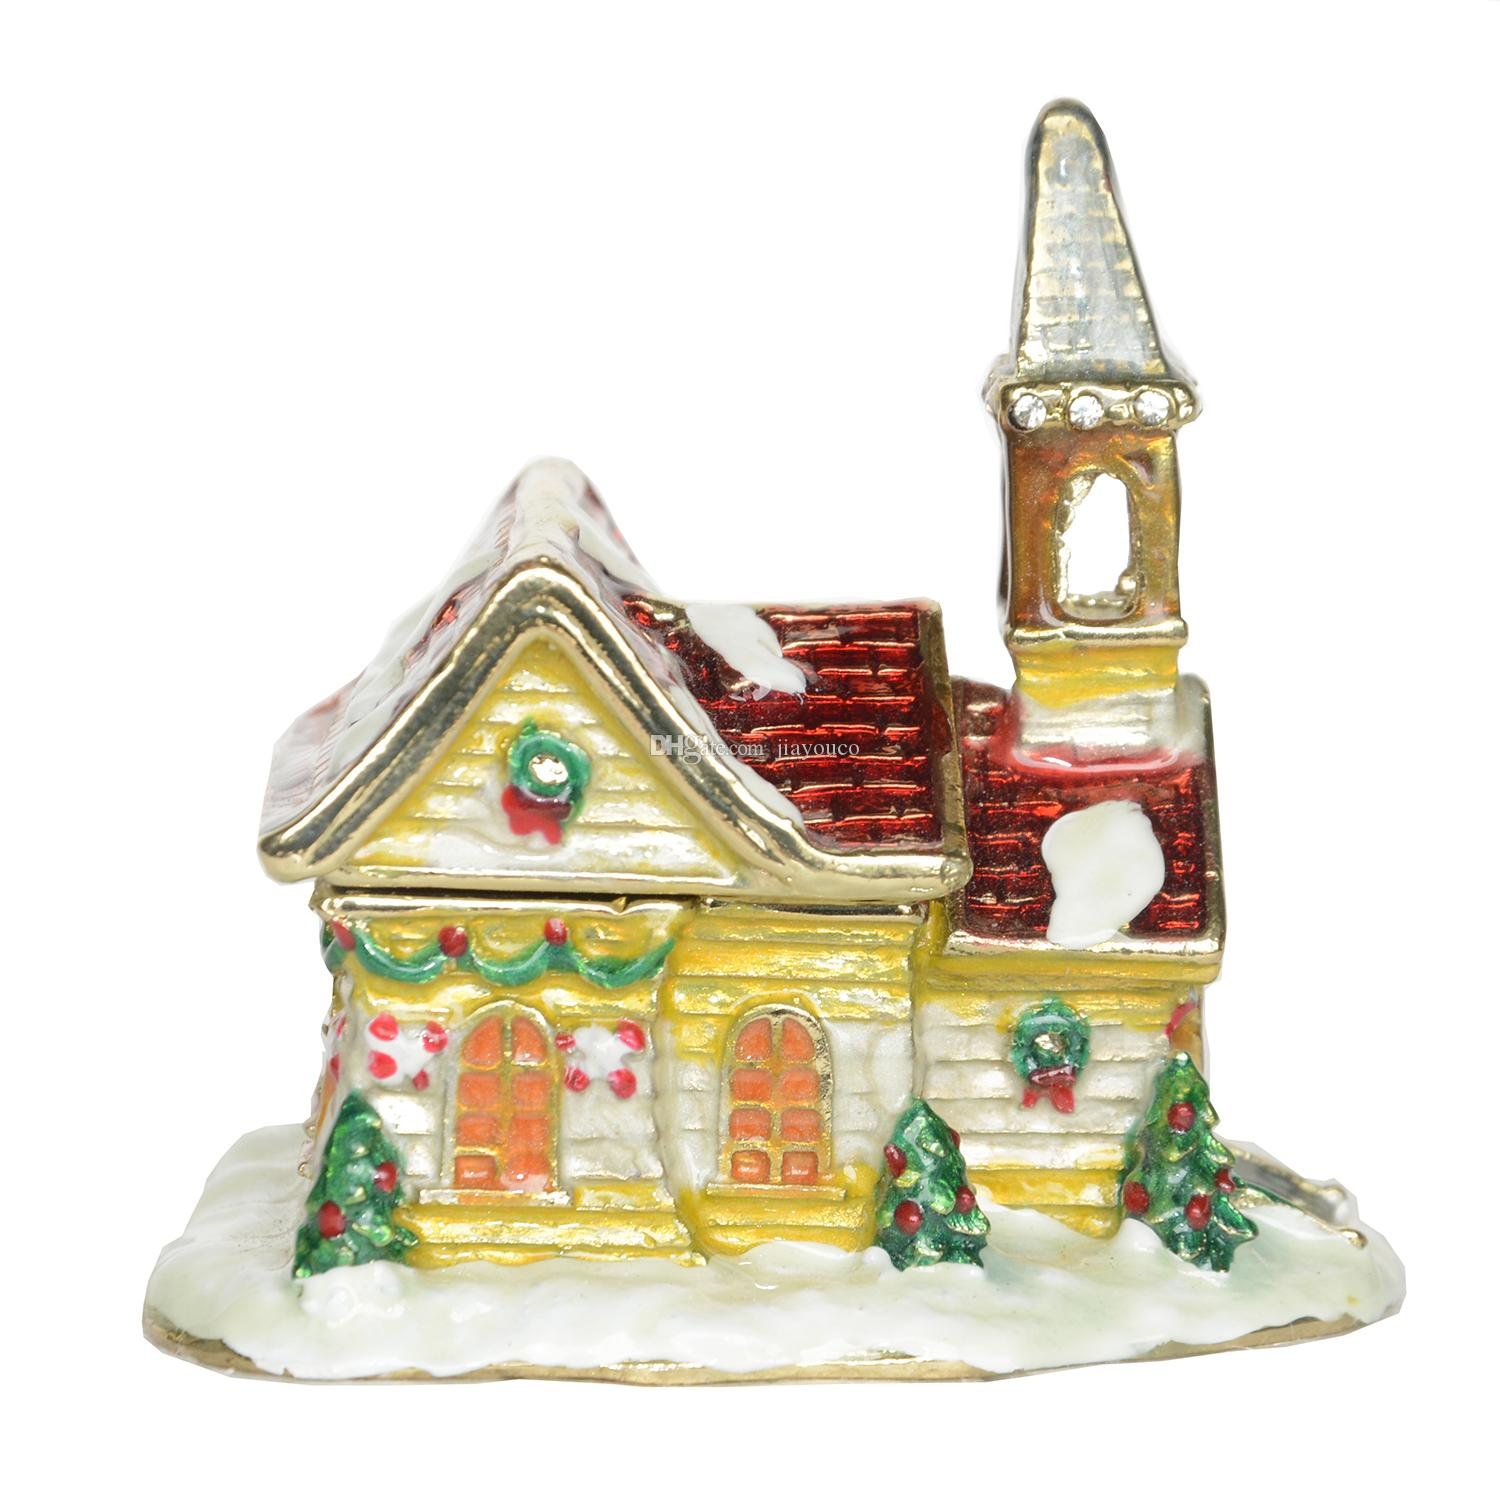 Christmas light house bejeweled trinket Box metal crafts Ring necklace Earring/Pendant Box small Jewelry Box